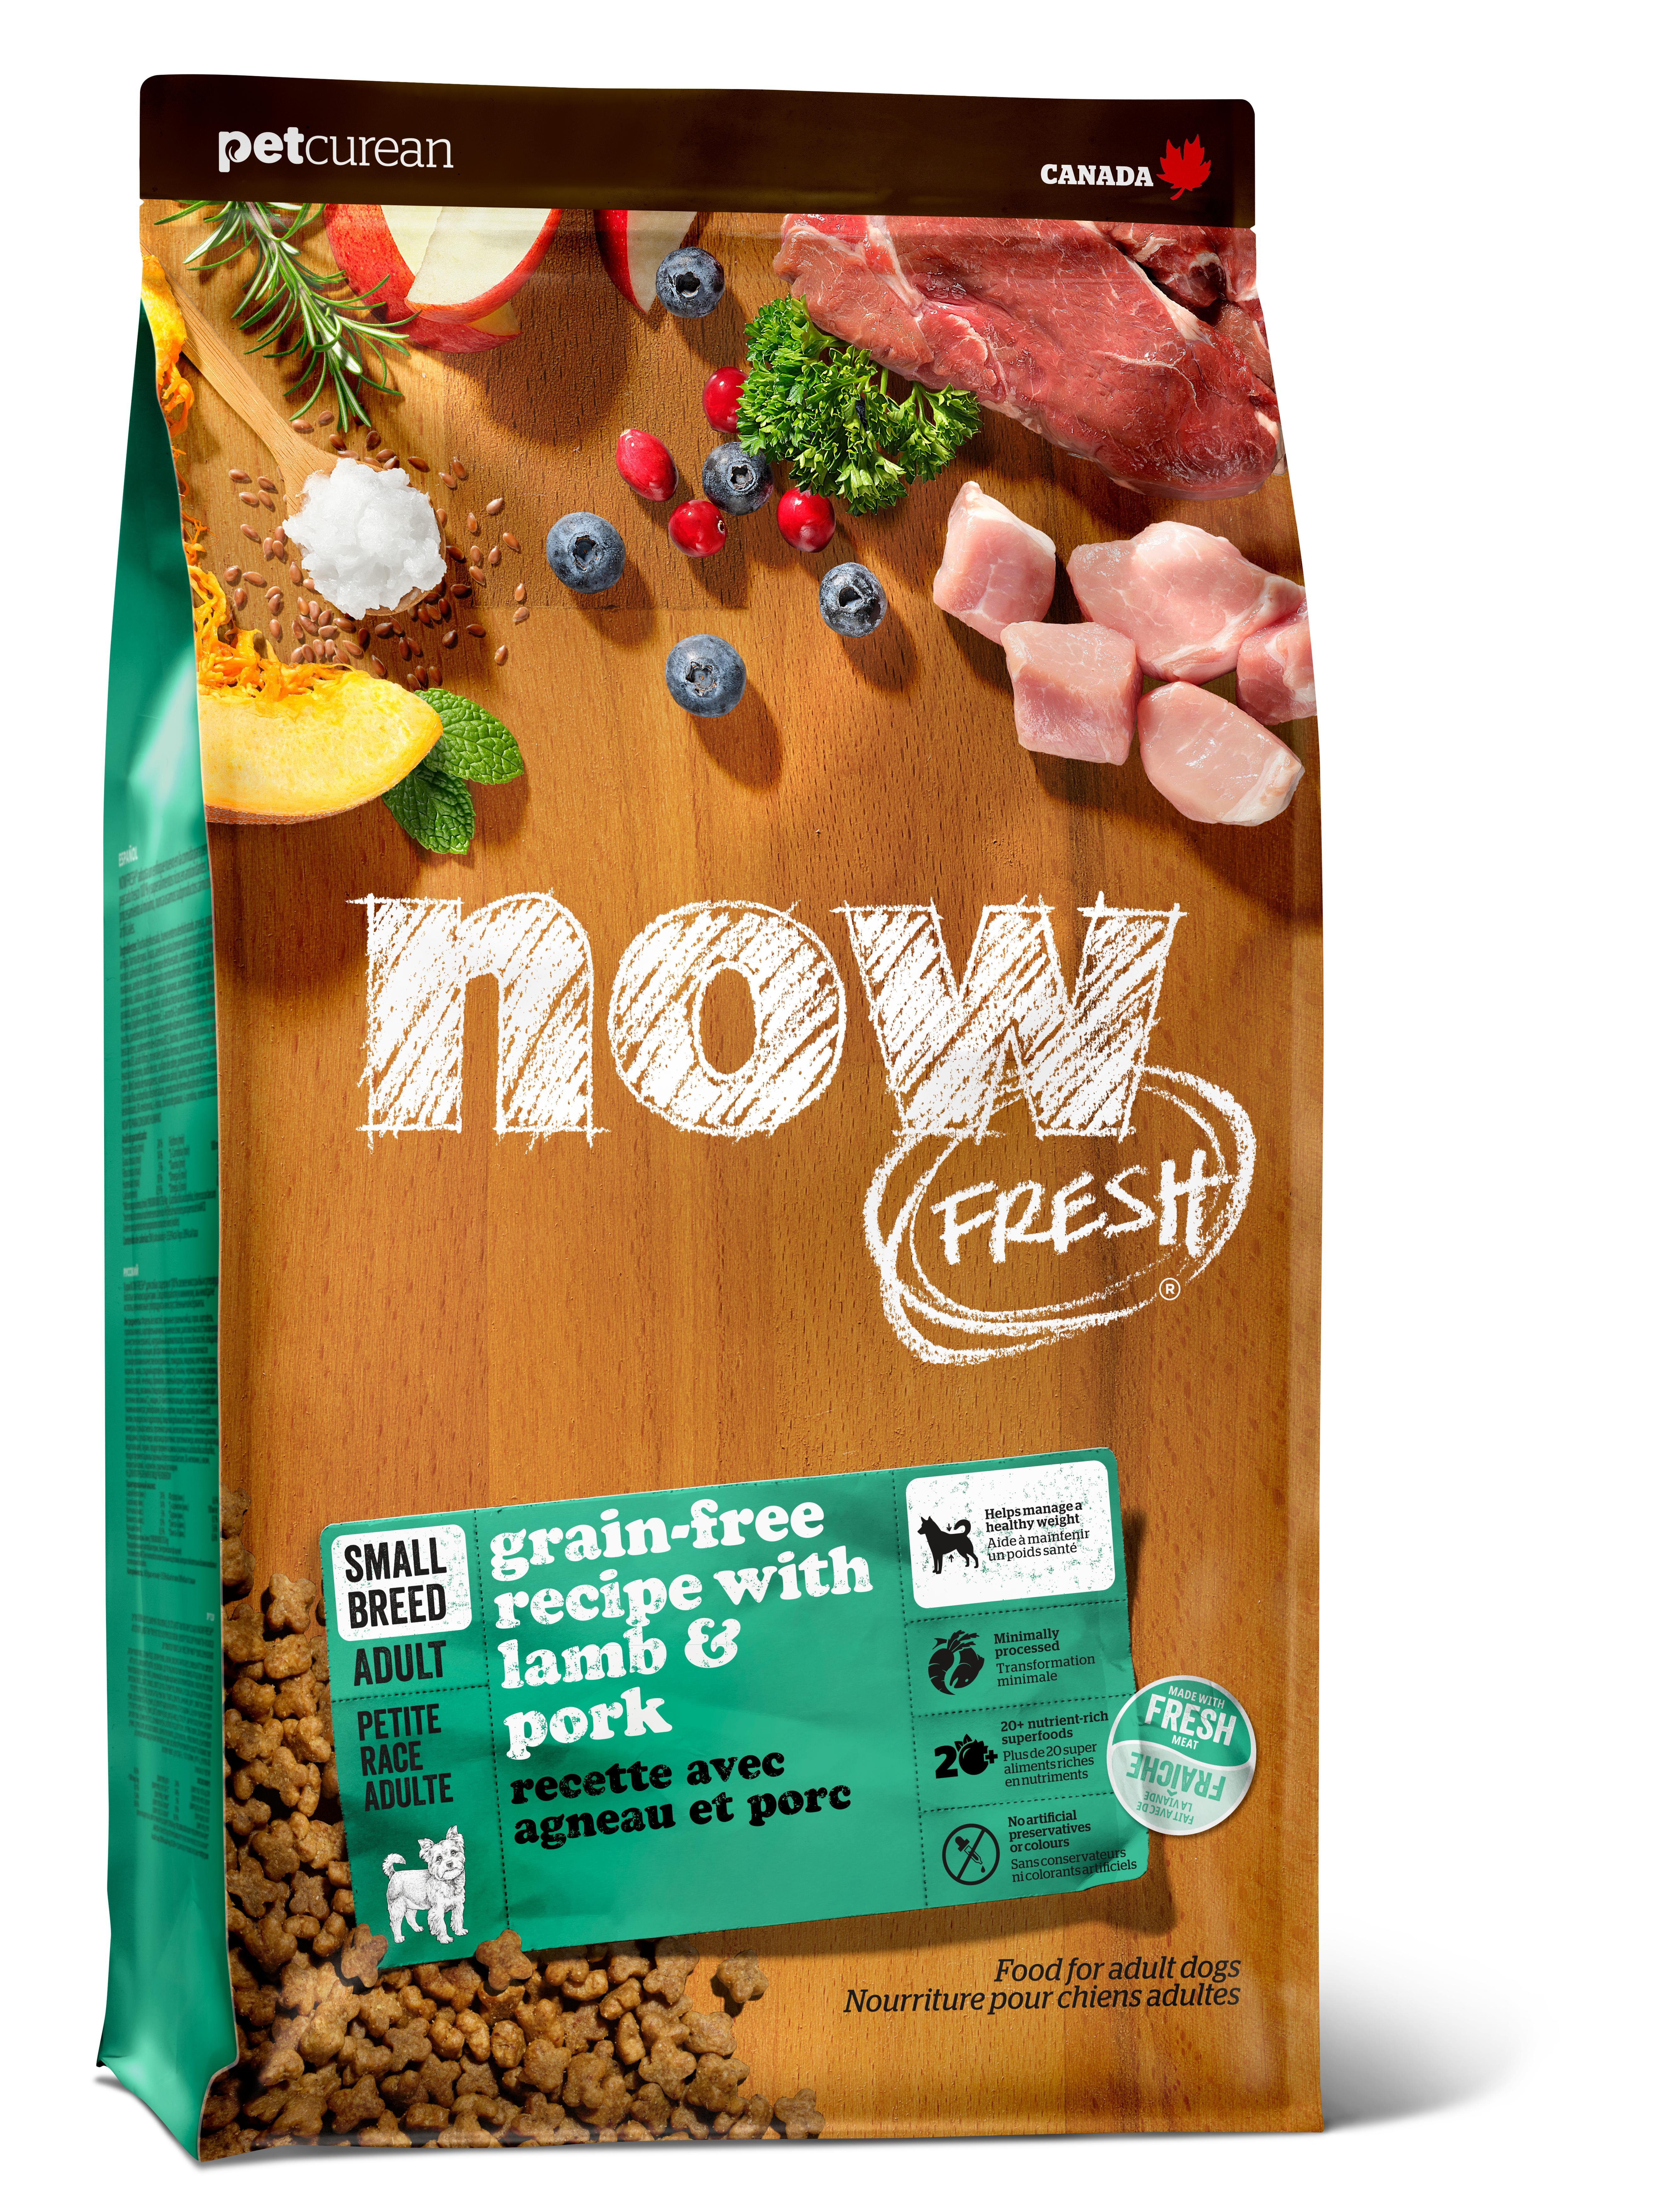 NOW FRESH Red Meat Small Breed Adult Grain-Free Dry Dog Food Image